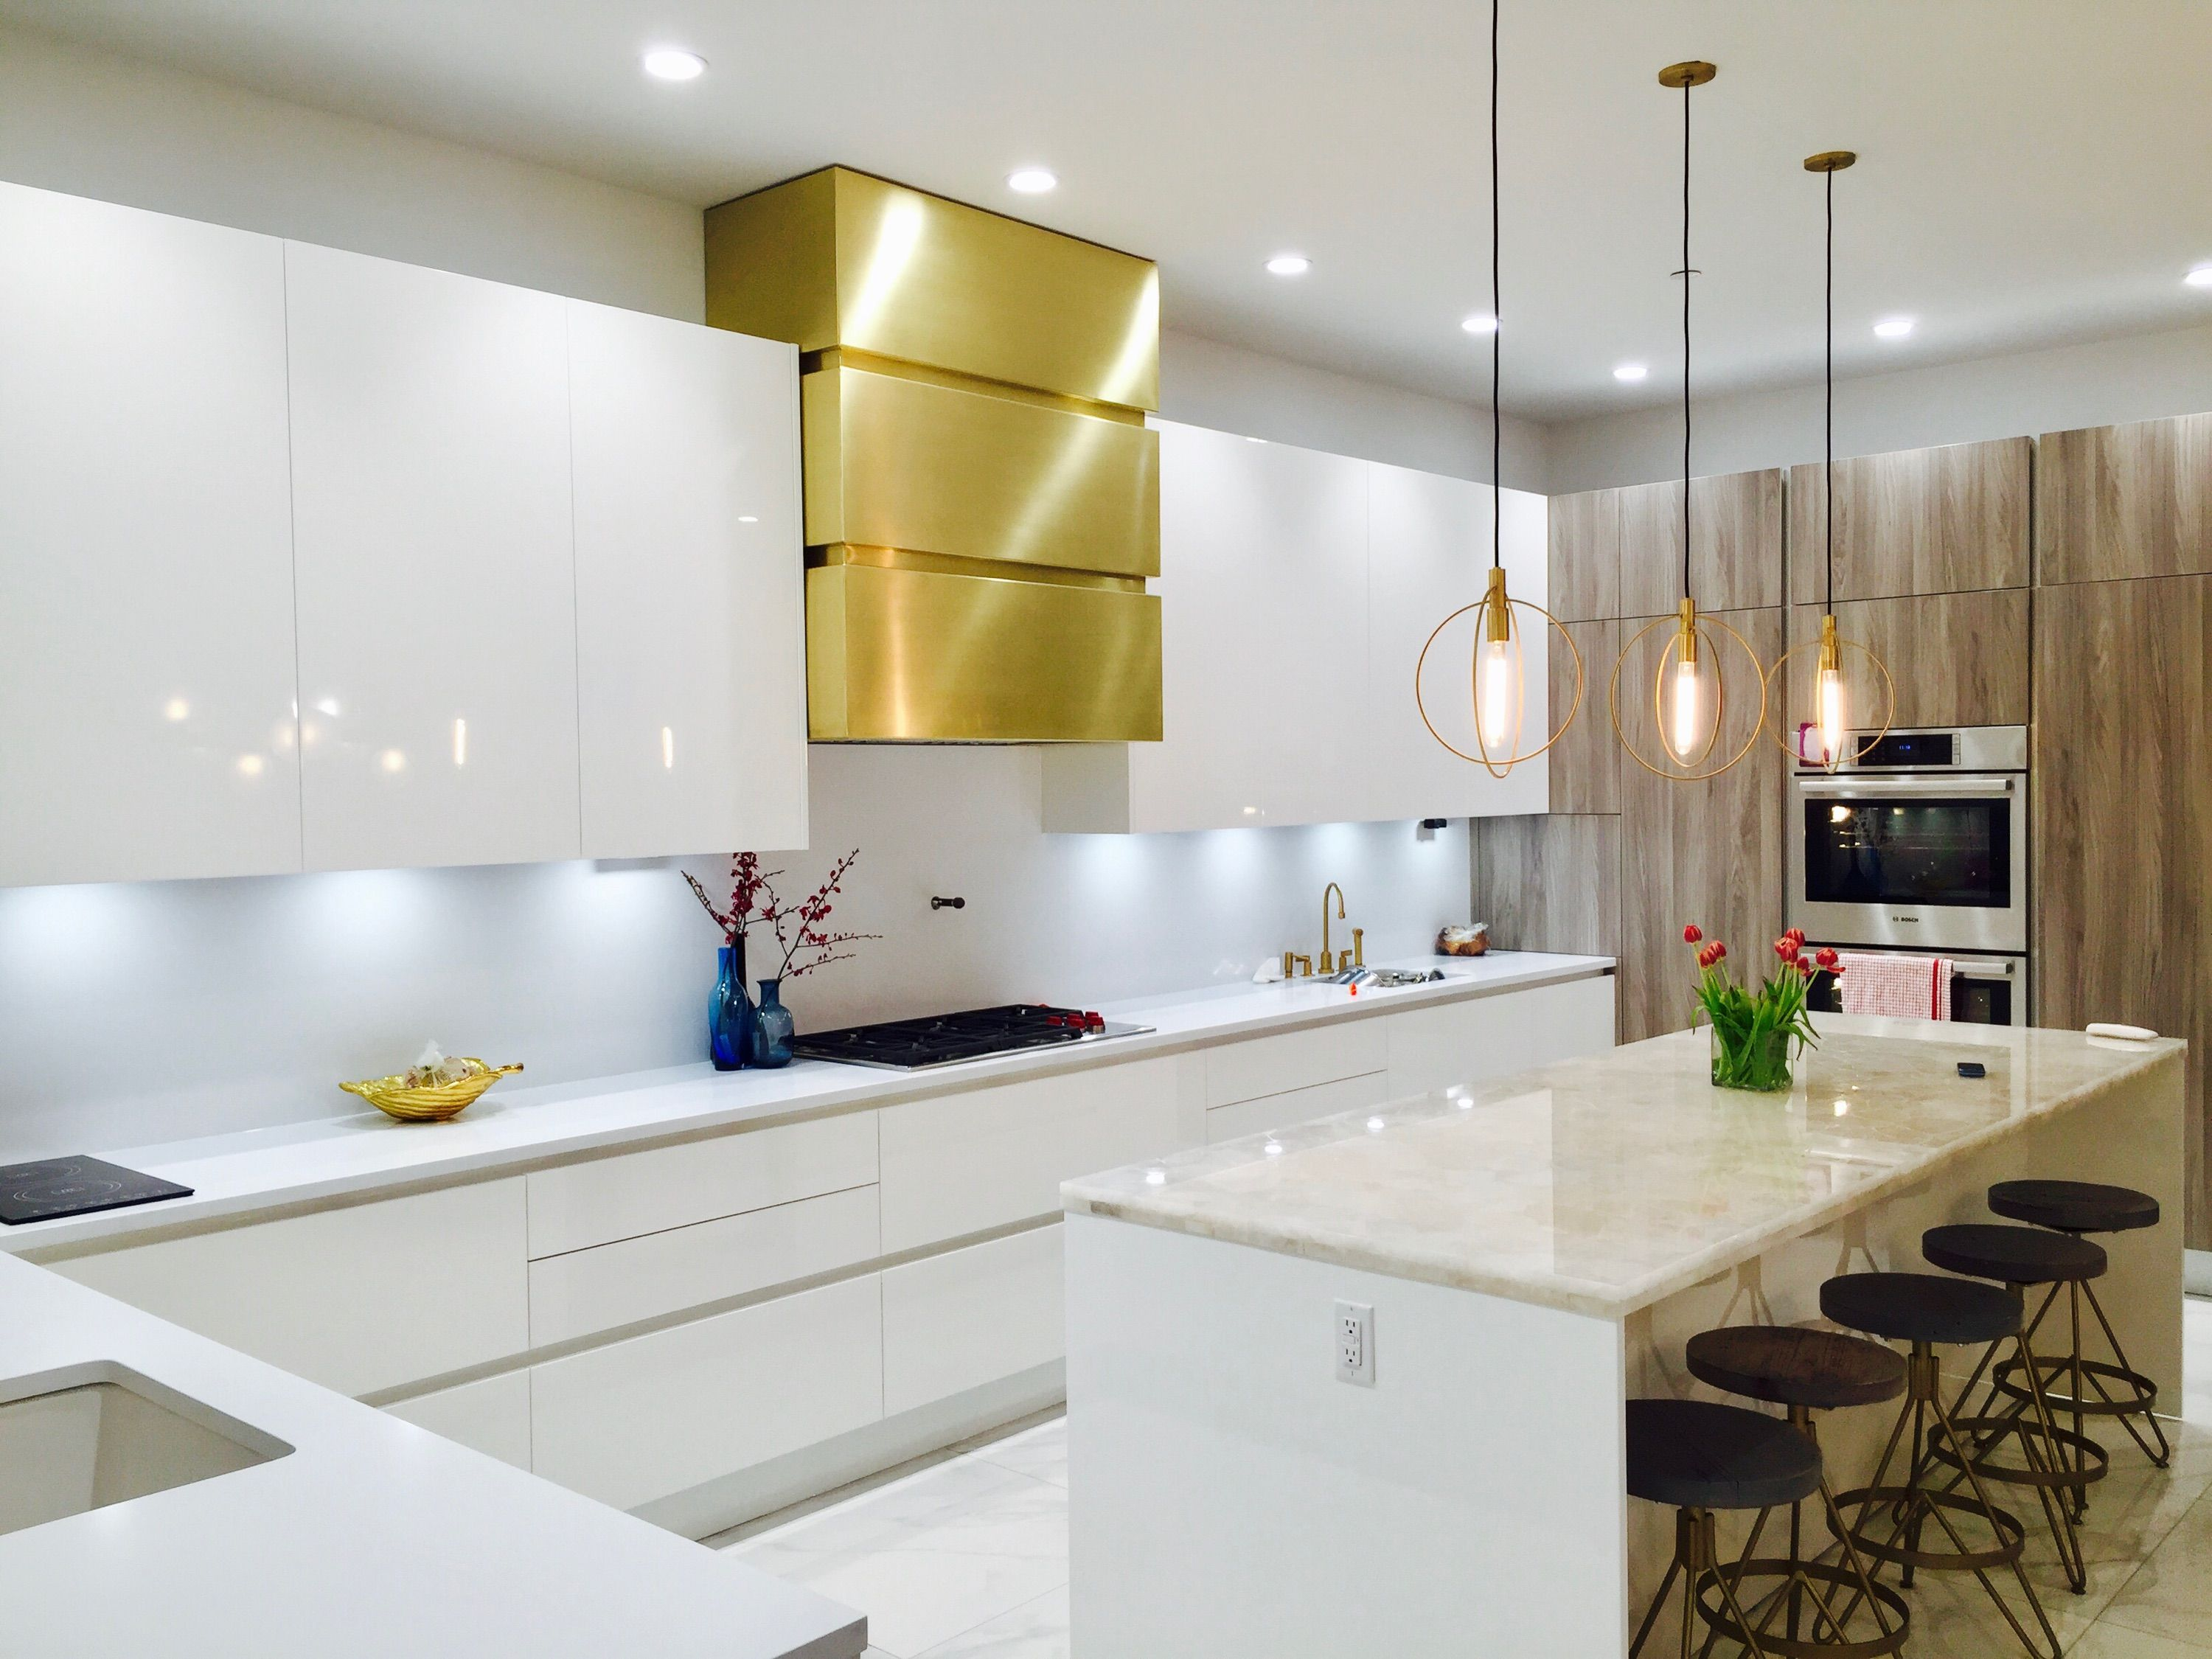 Proud To Present A Modern Line Of Range Hood Designs To Make Your Kitchen  Look Fresh